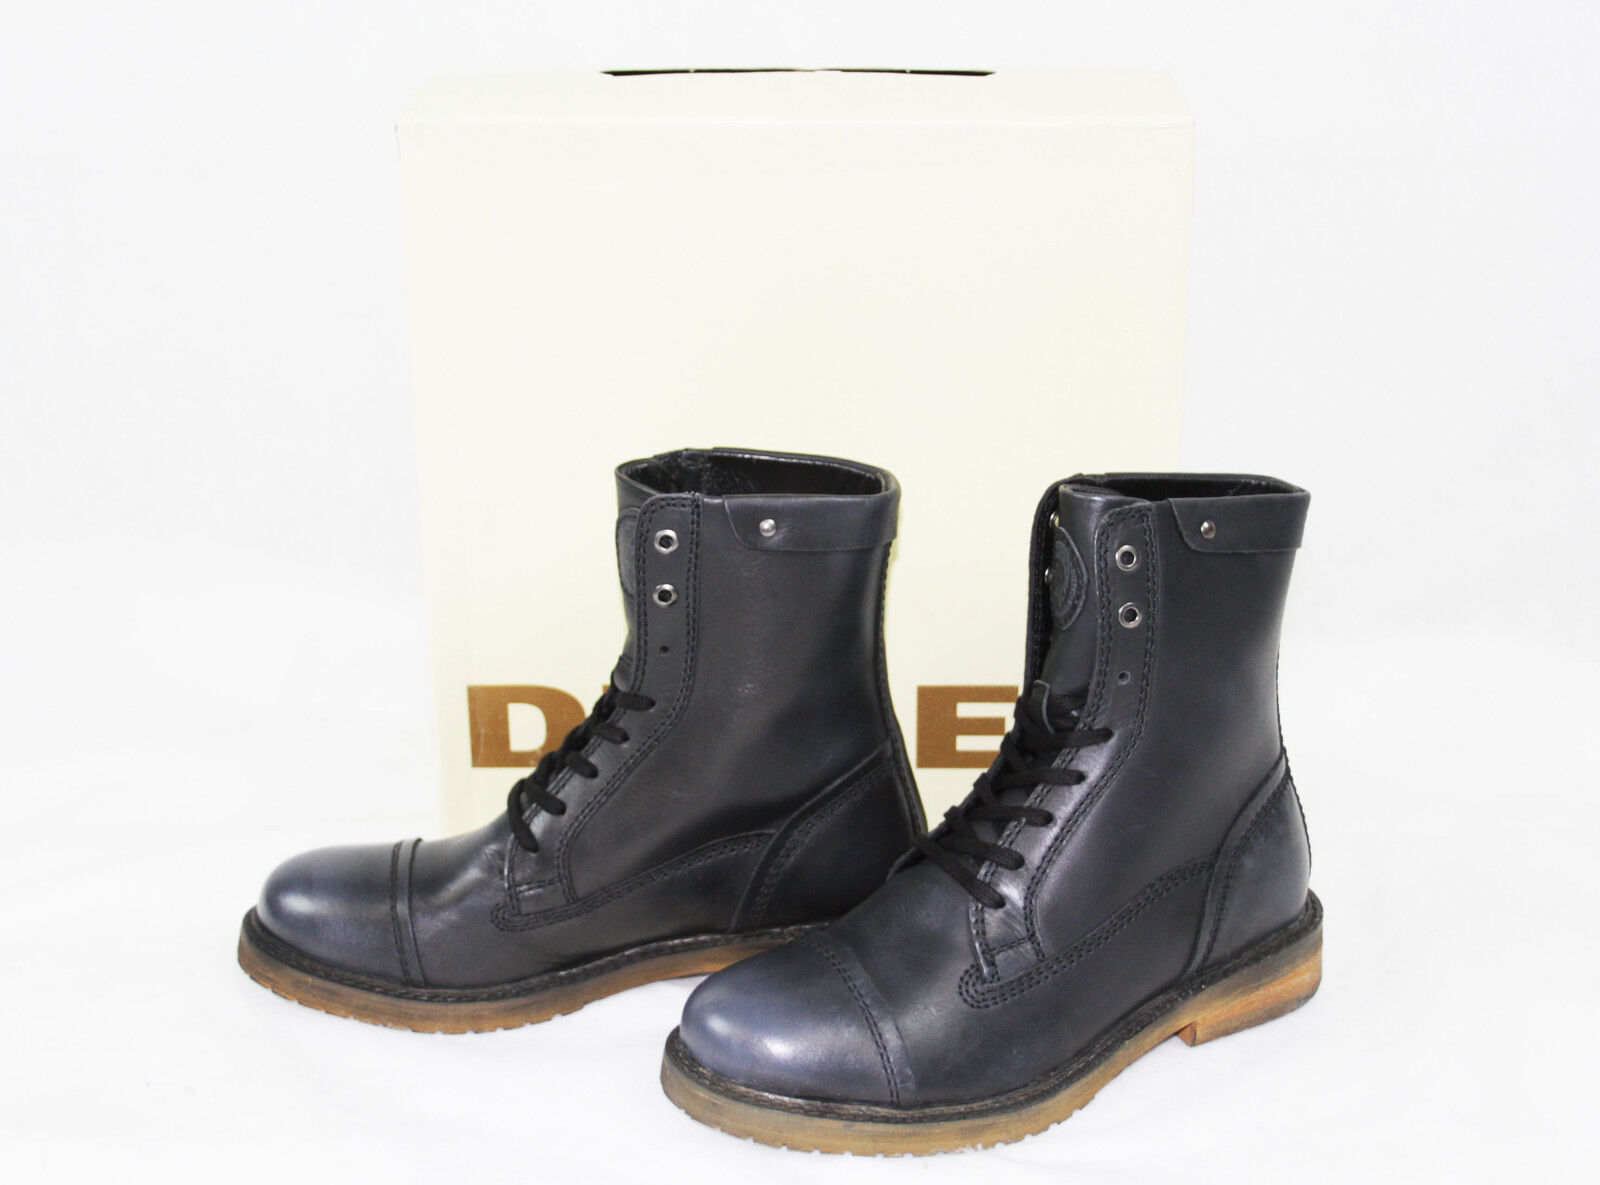 DIESEL Brand Men's Fashion Leather UNPLAGGED Casual, Dress Ankle Boots Shoes